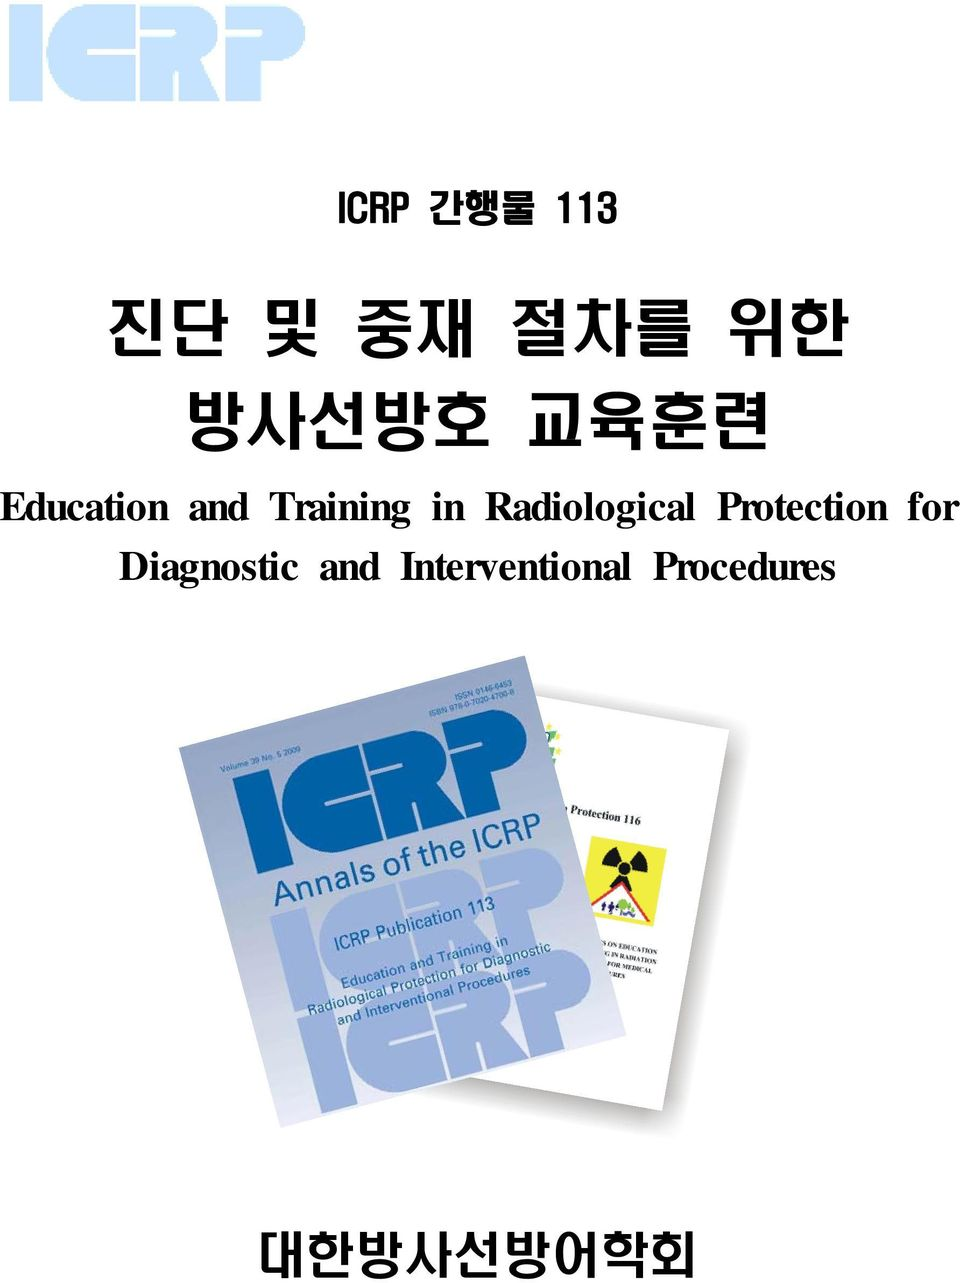 Radiological Protection for